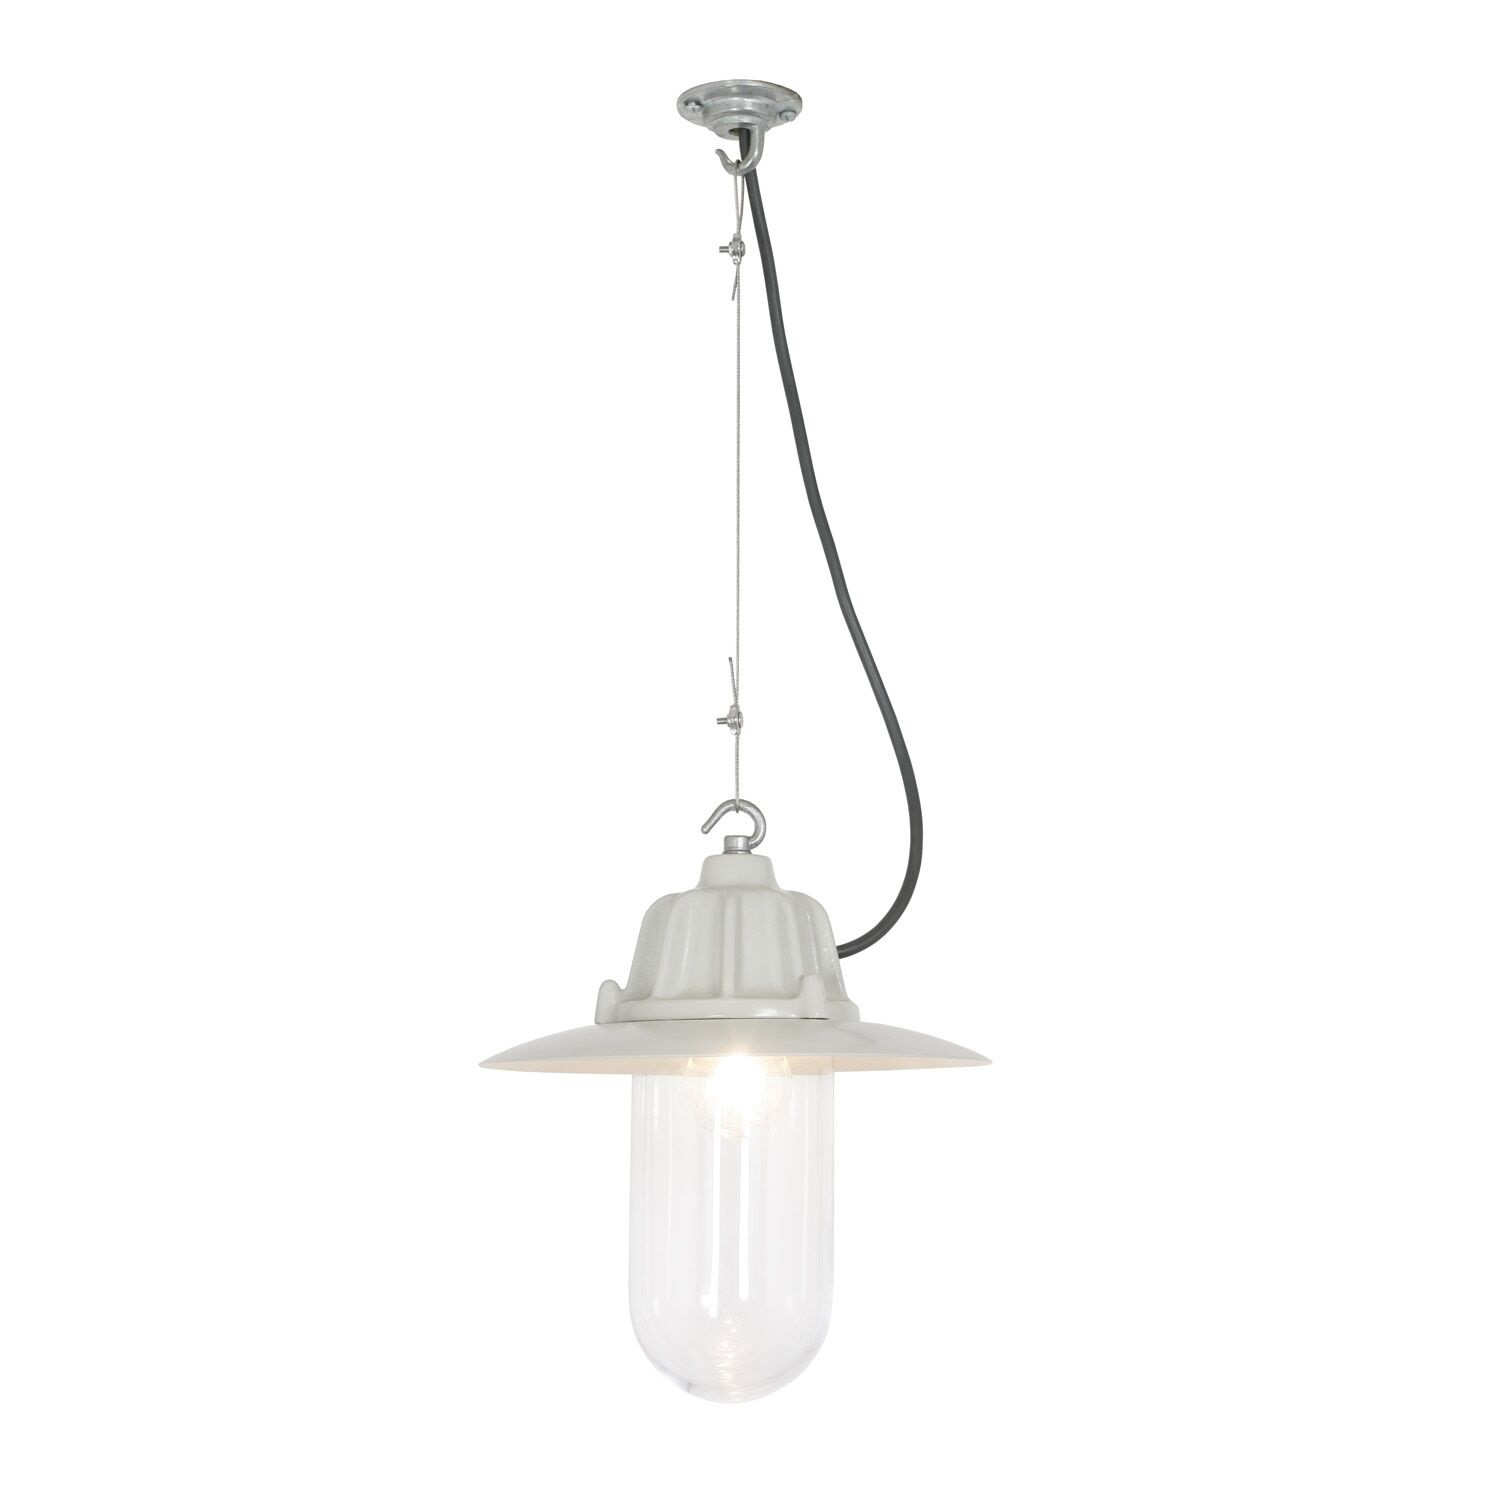 Dockside Pendant Light 7675 Putty grey, Clear glass